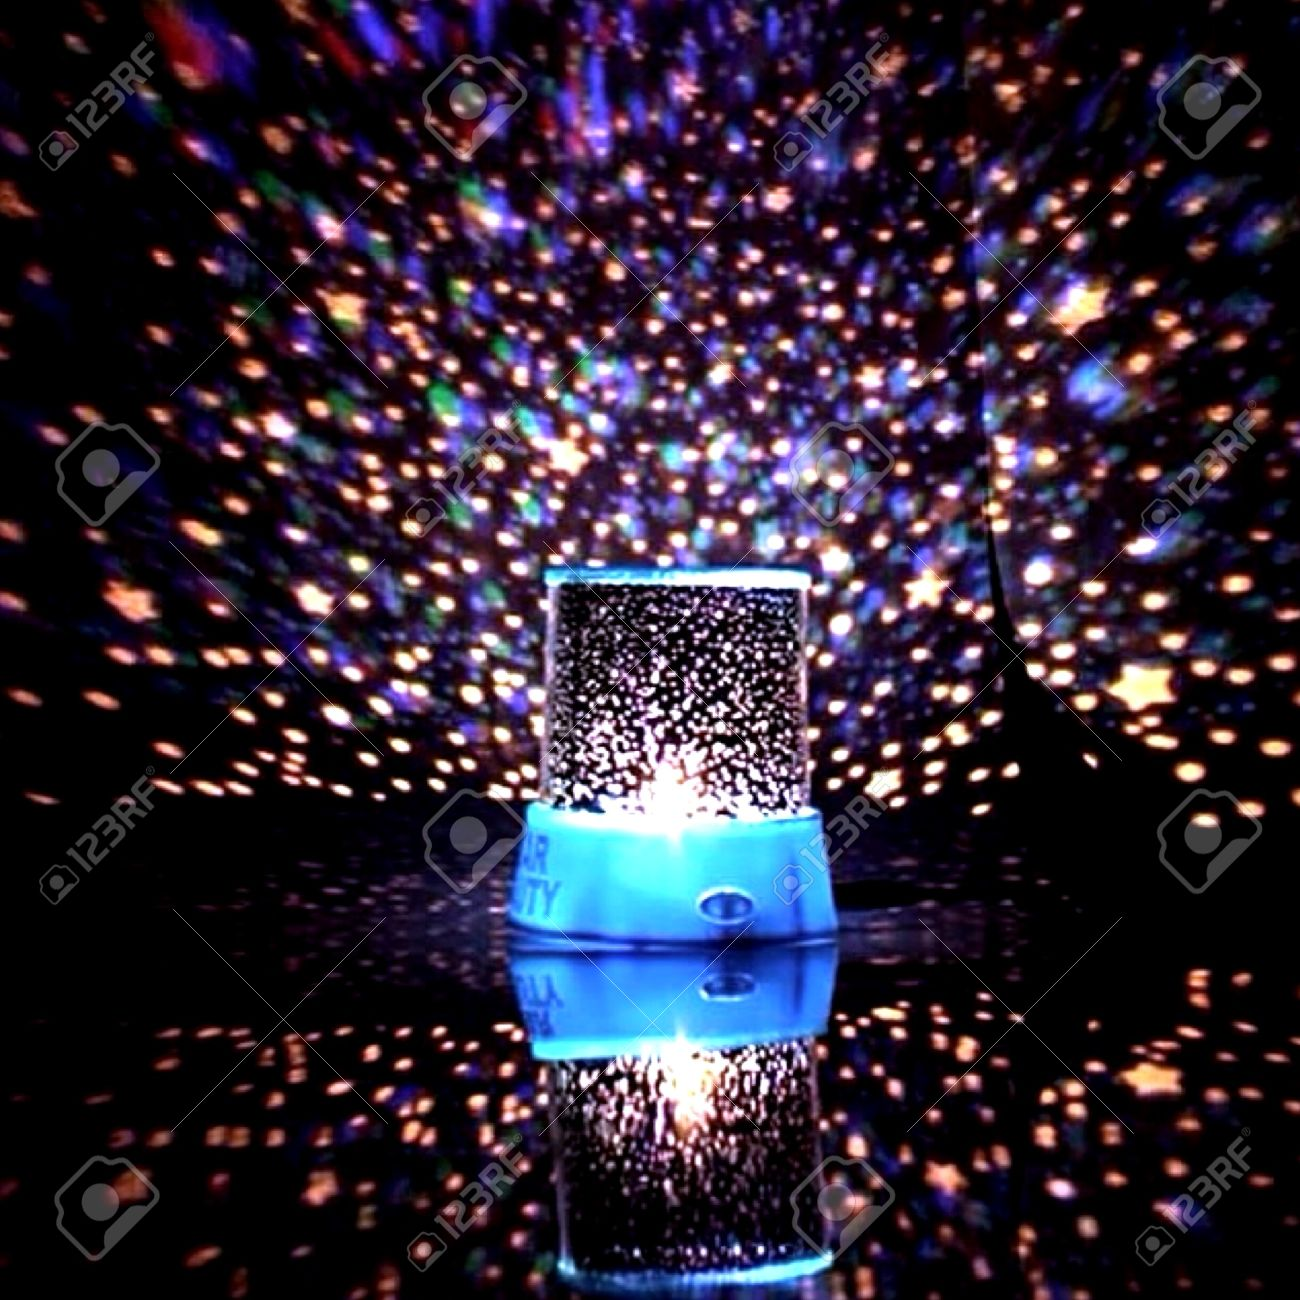 Light Of Galaxy Lamp Stock Photo Picture And Royalty Free Image